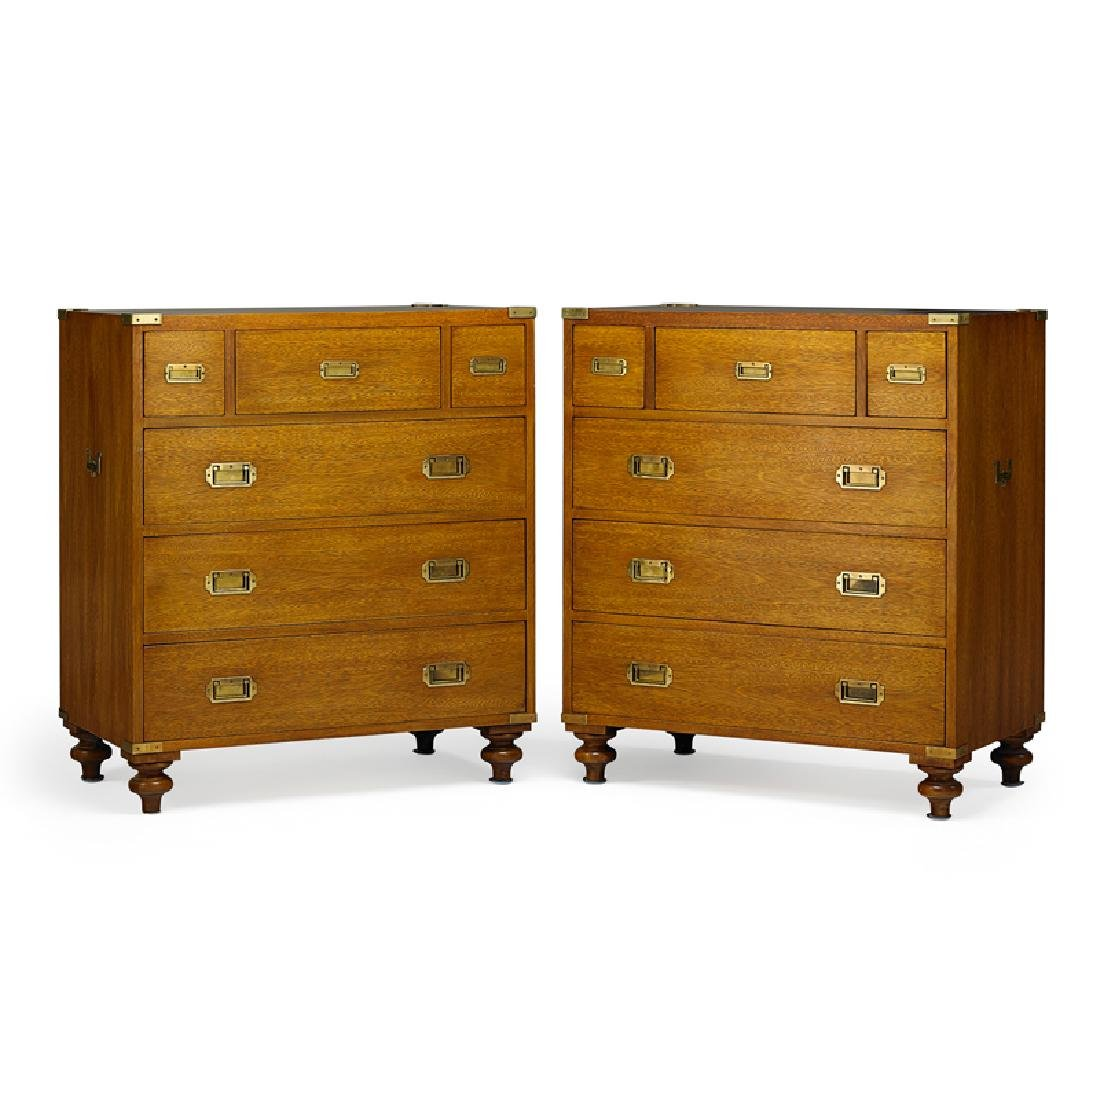 PAIR OF RALPH LAUREN MAHOGANY CAMPAIGN CHESTS